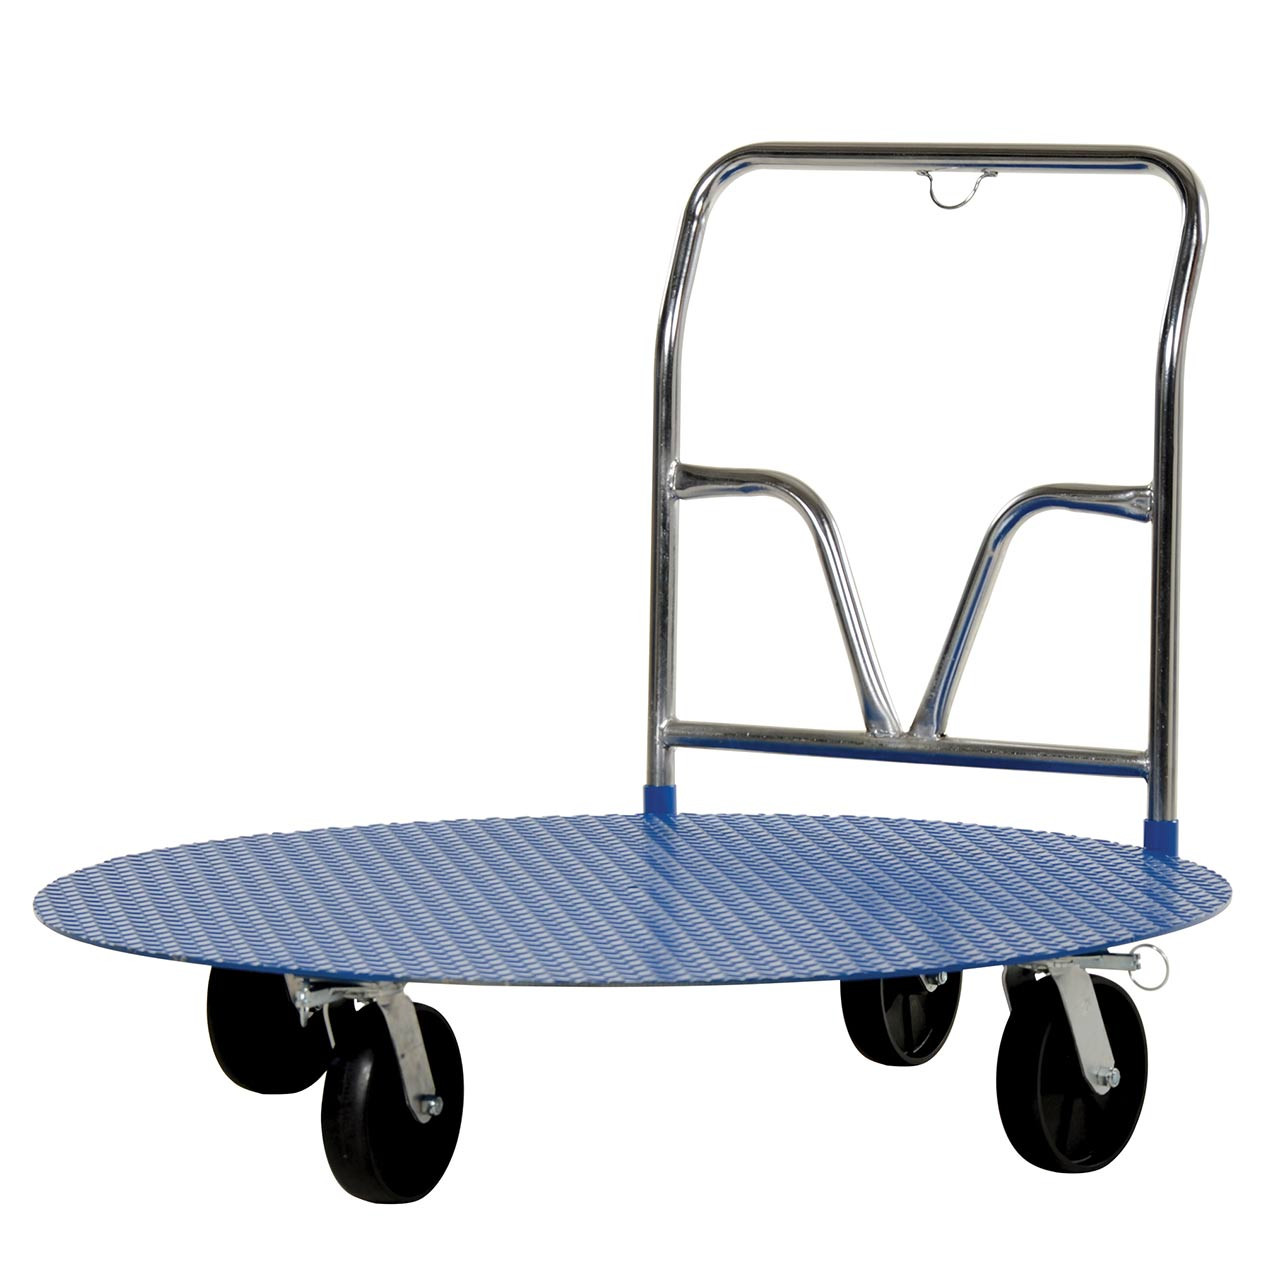 Side view of cart with carousel